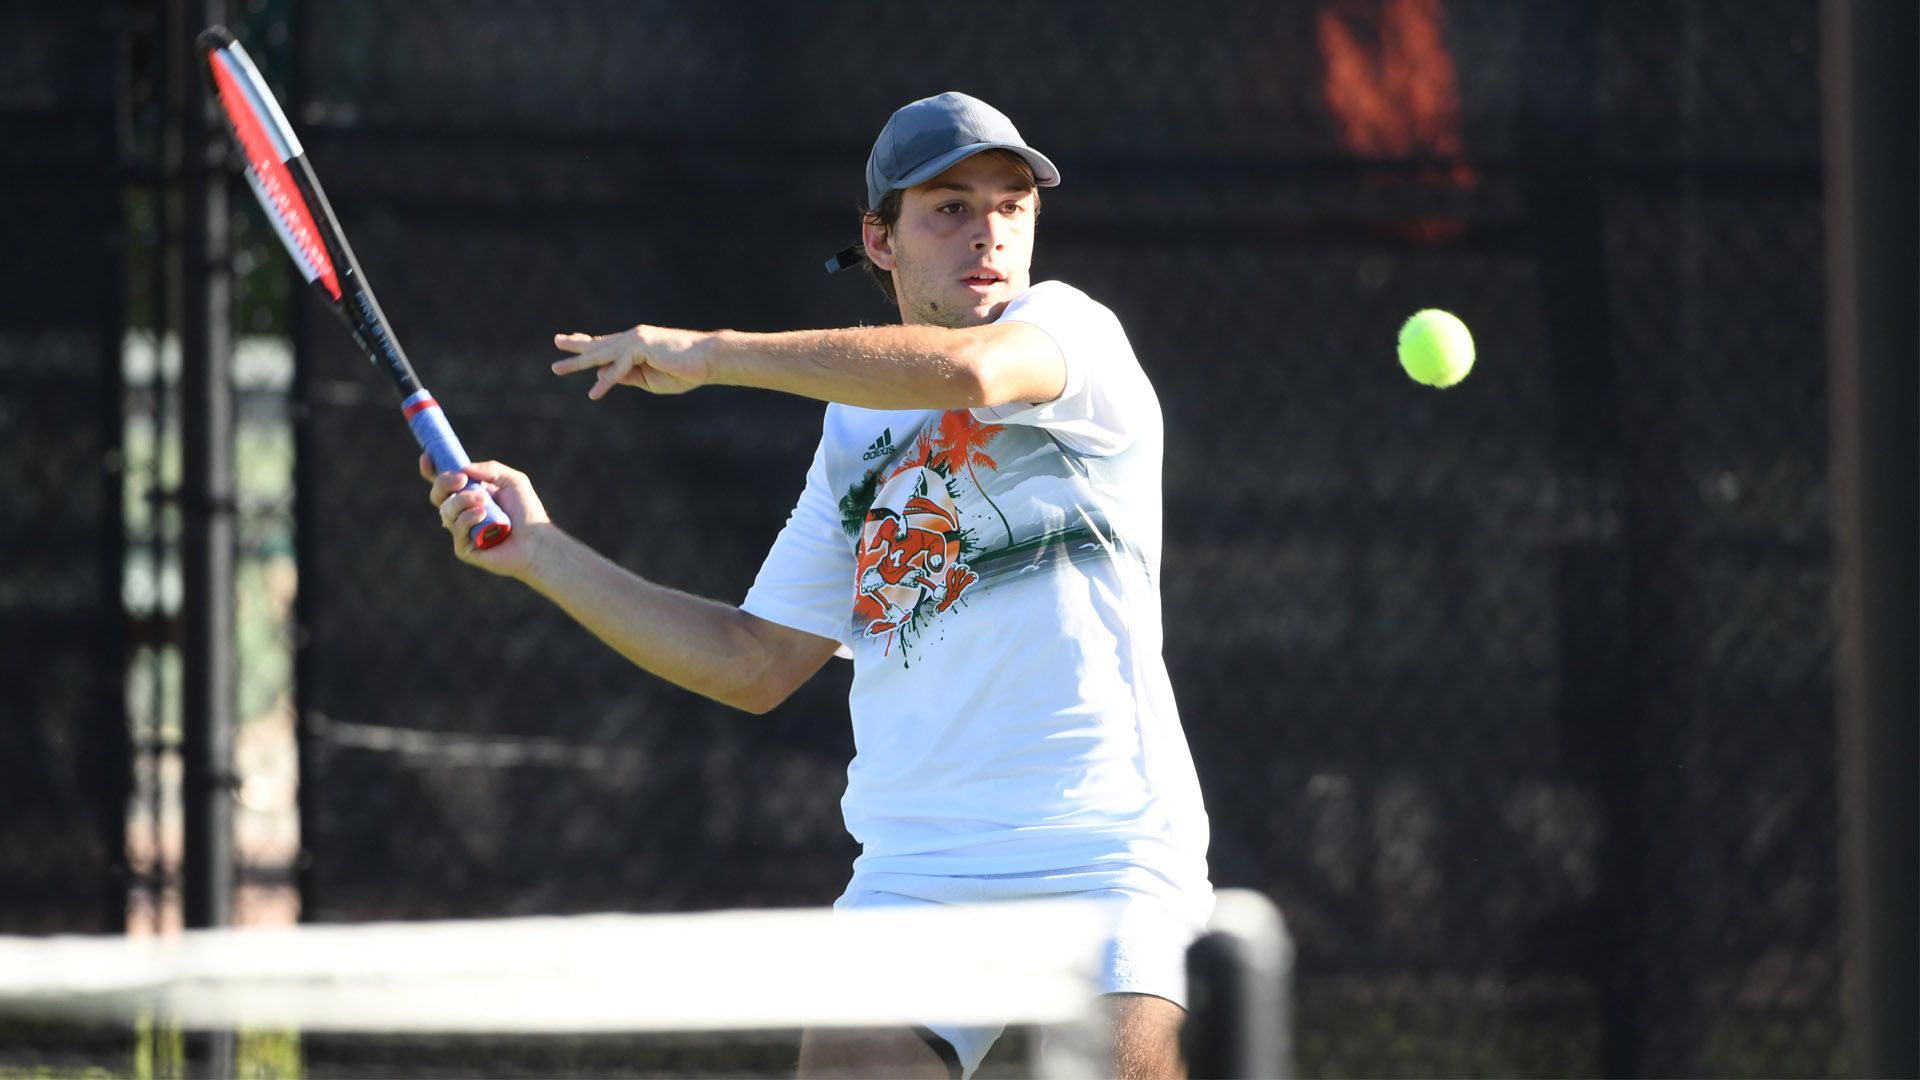 Canes Fall at No. 3 Mississippi State, 4-1